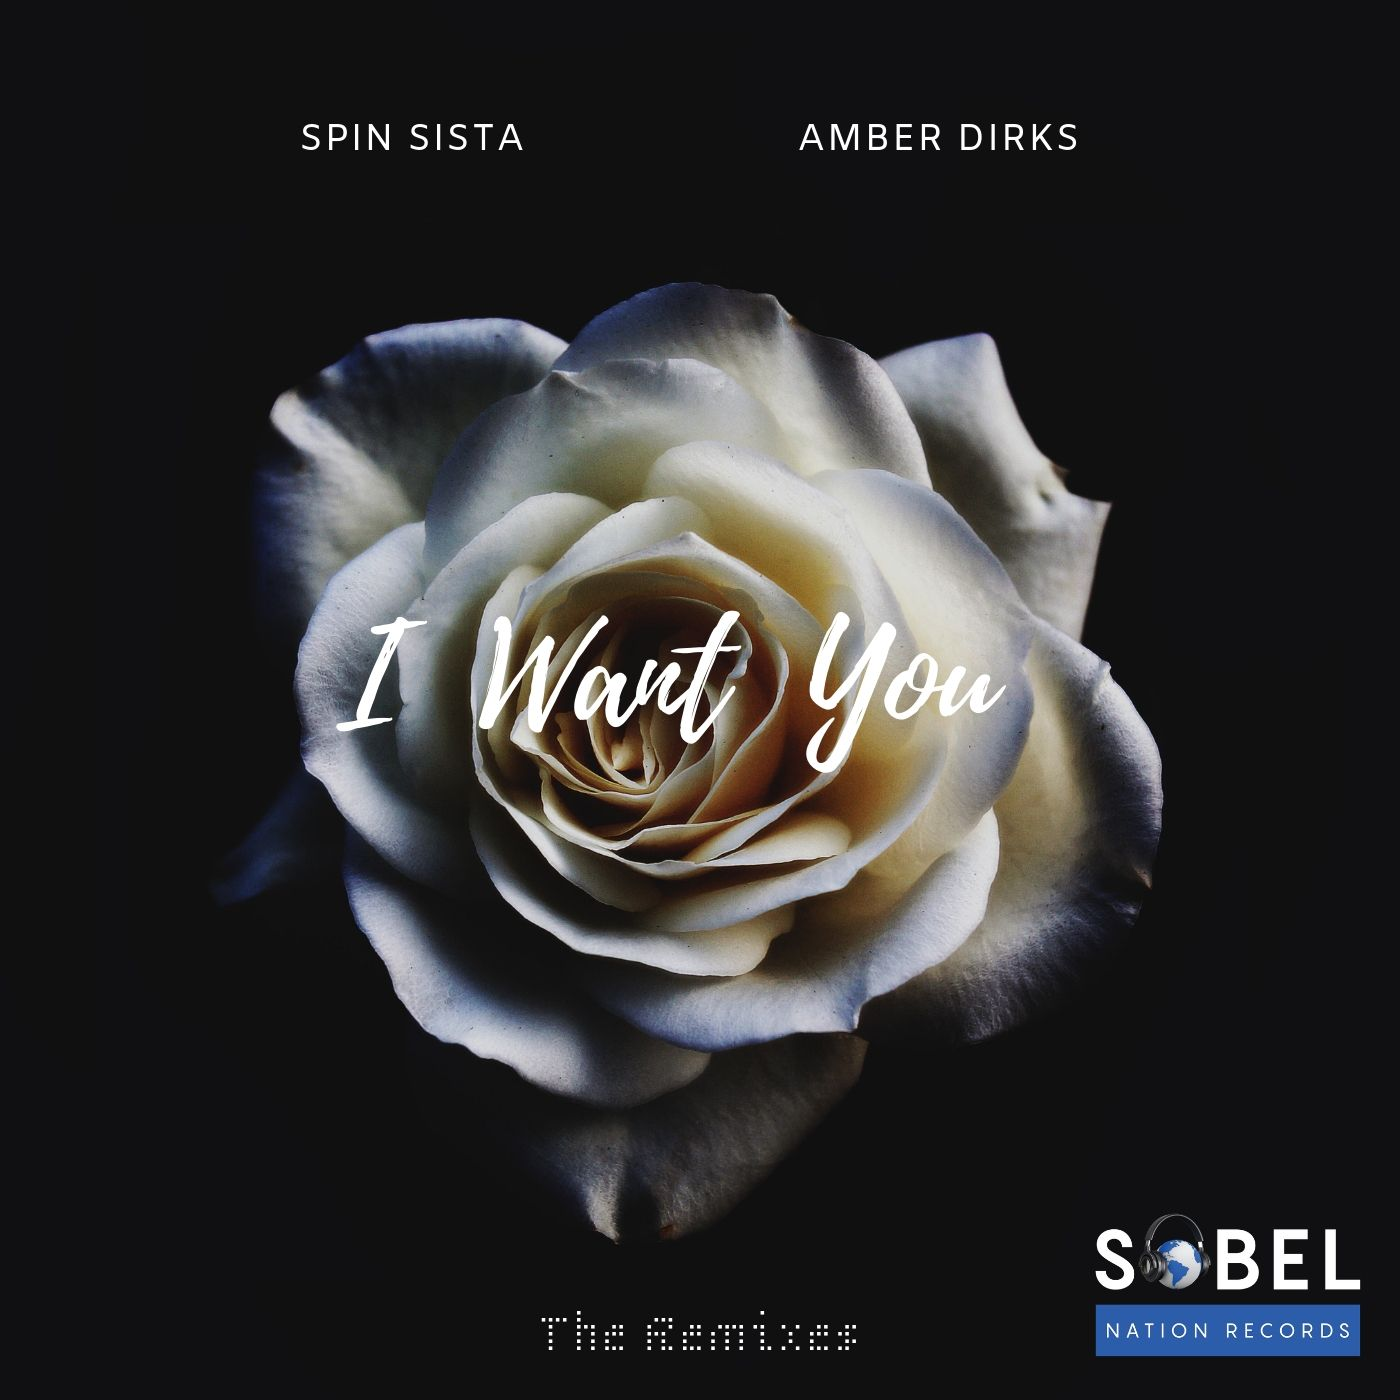 Spin Sista and Amber Dirks Drop 'I Want You' On Sobel Nation Records